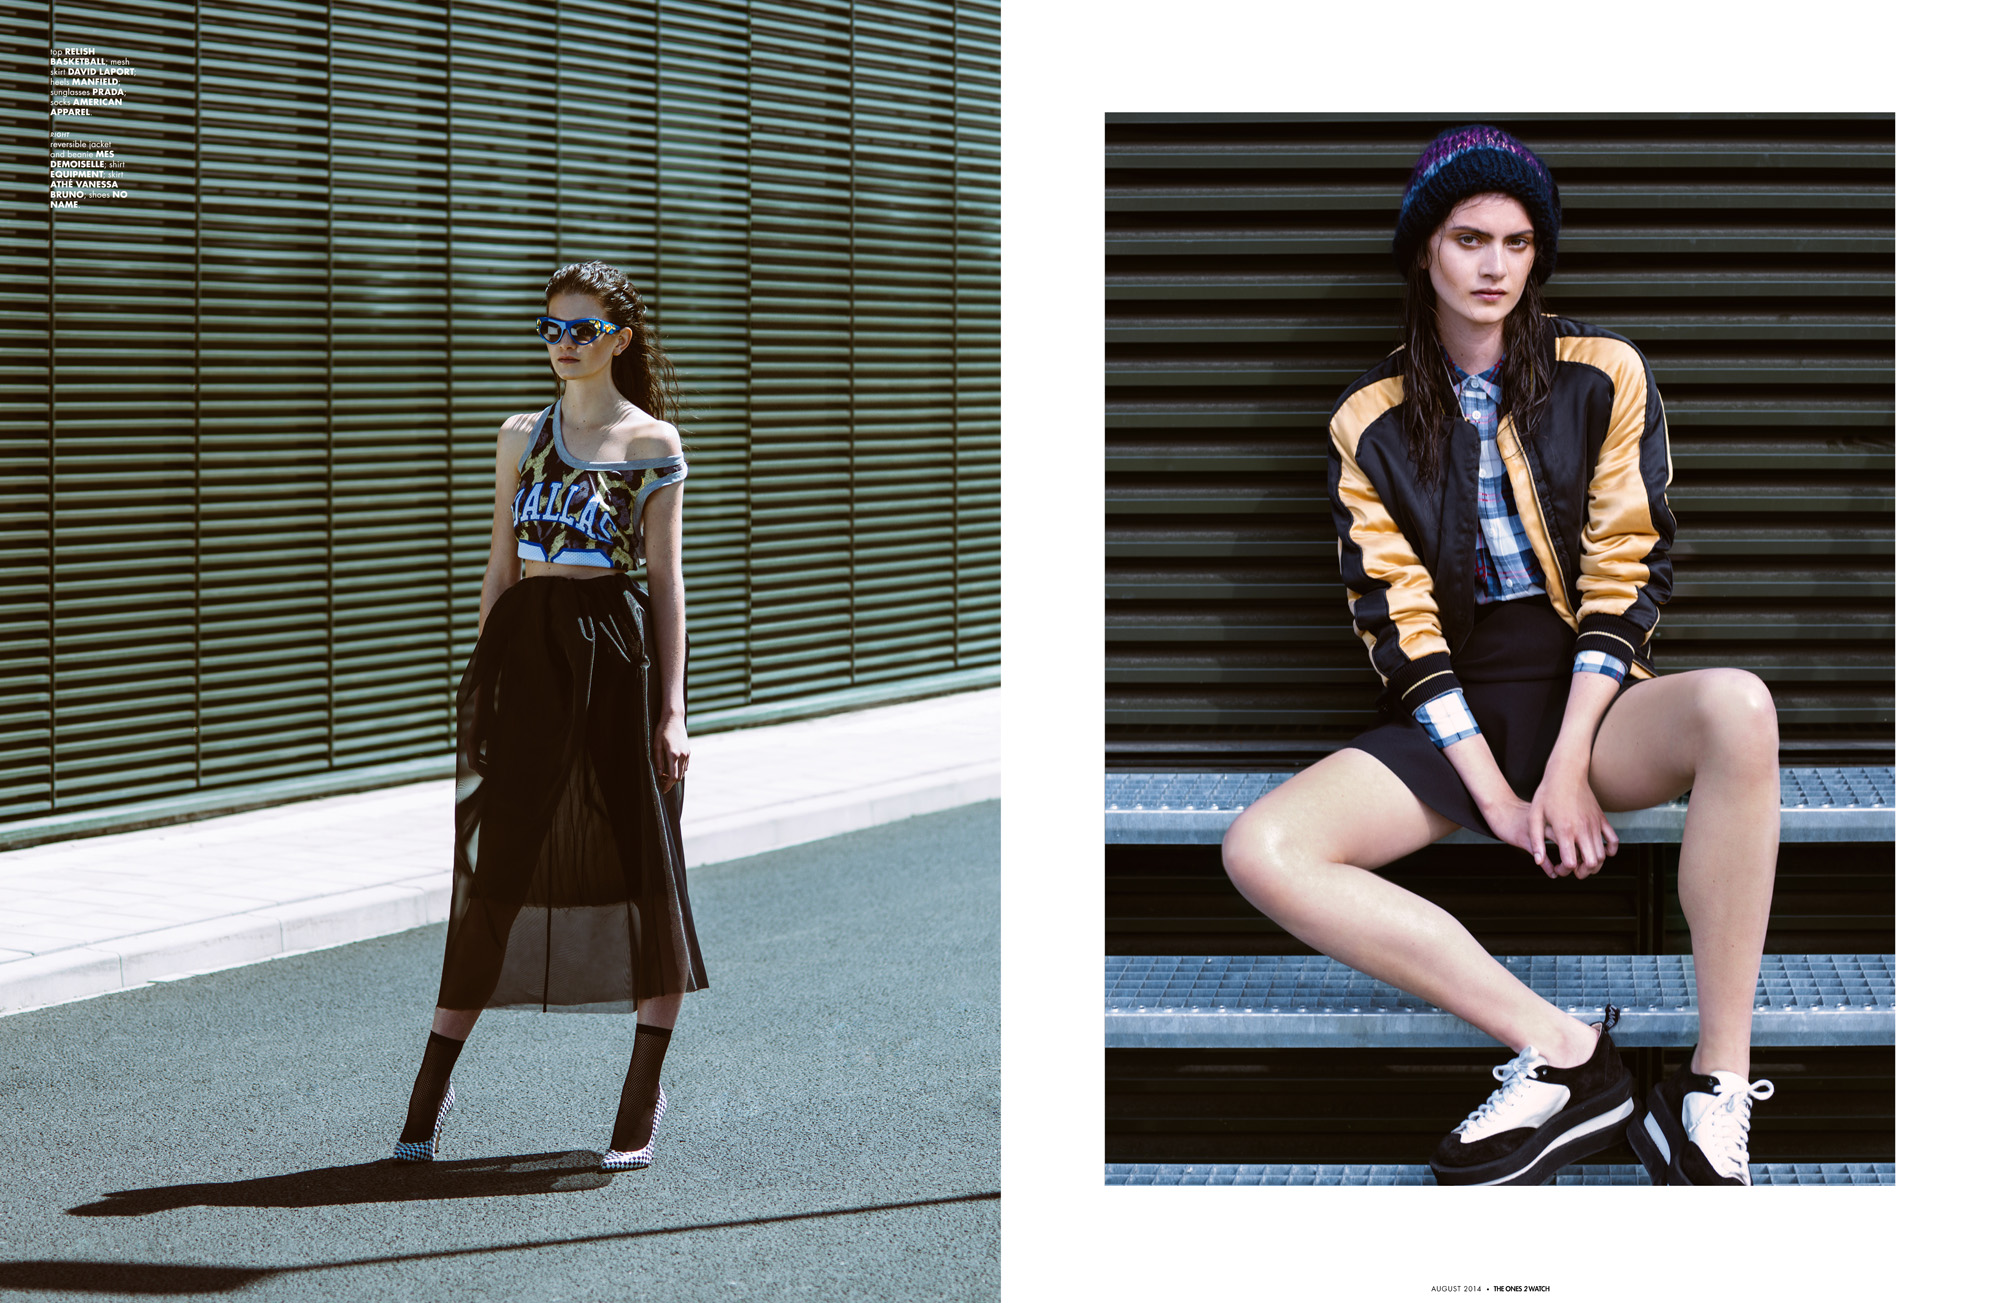 top RELISH BASKETBALL; mesh skirt DAVID LAPORT; heels MANFIELD; sunglasses PRADA; socks AMERICAN APPAREL. right: reversible jacket and beanie MES DEMOISELLE; shirt EQUIPMENT; skirt ATHÉ VANESSA BRUNO; shoes NO NAME.